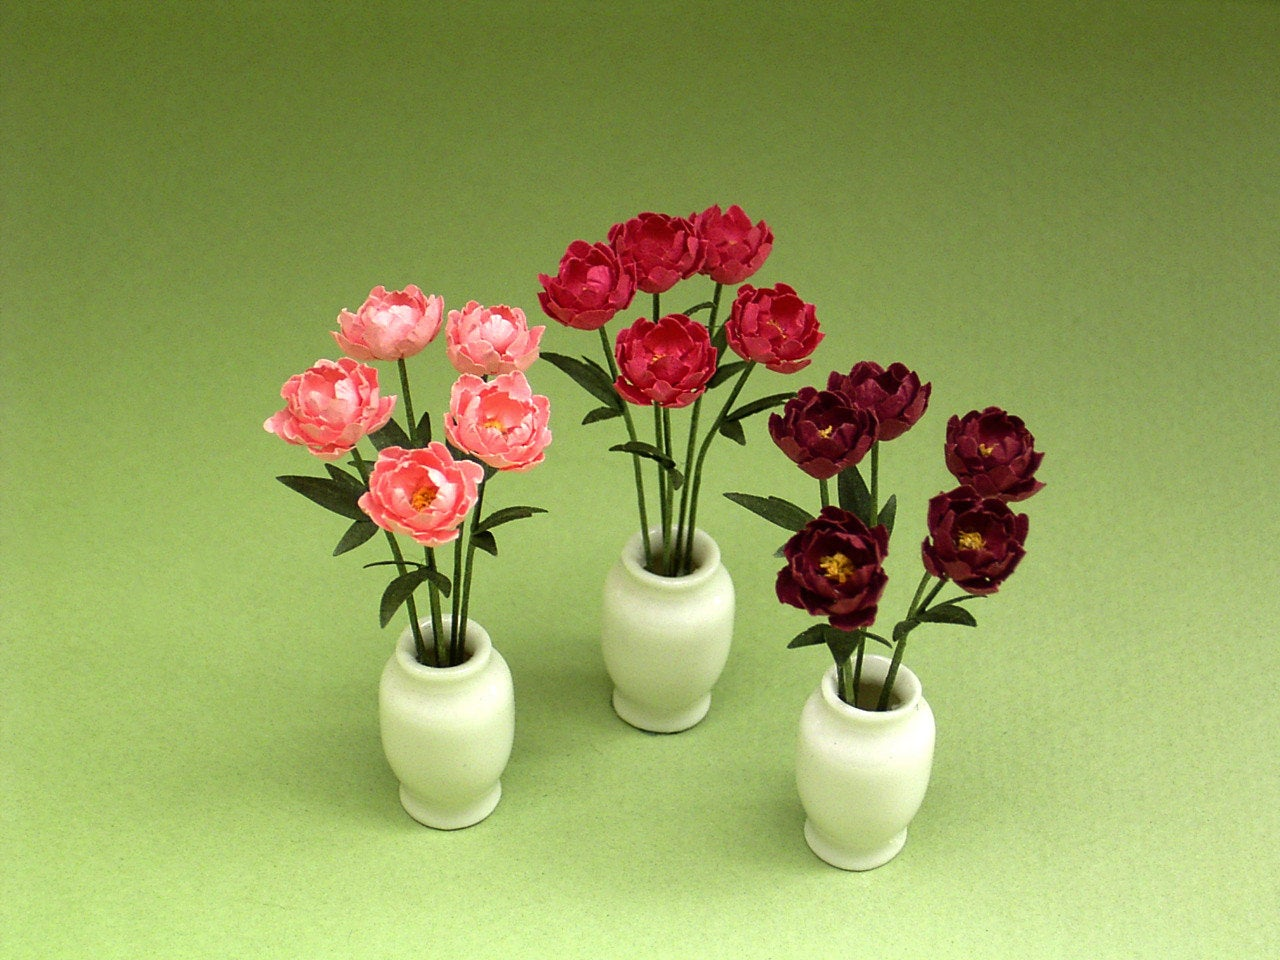 Peony Paper Flower Kit  for 1/12th scale Dollhouses, Florists and Miniature Gardens.